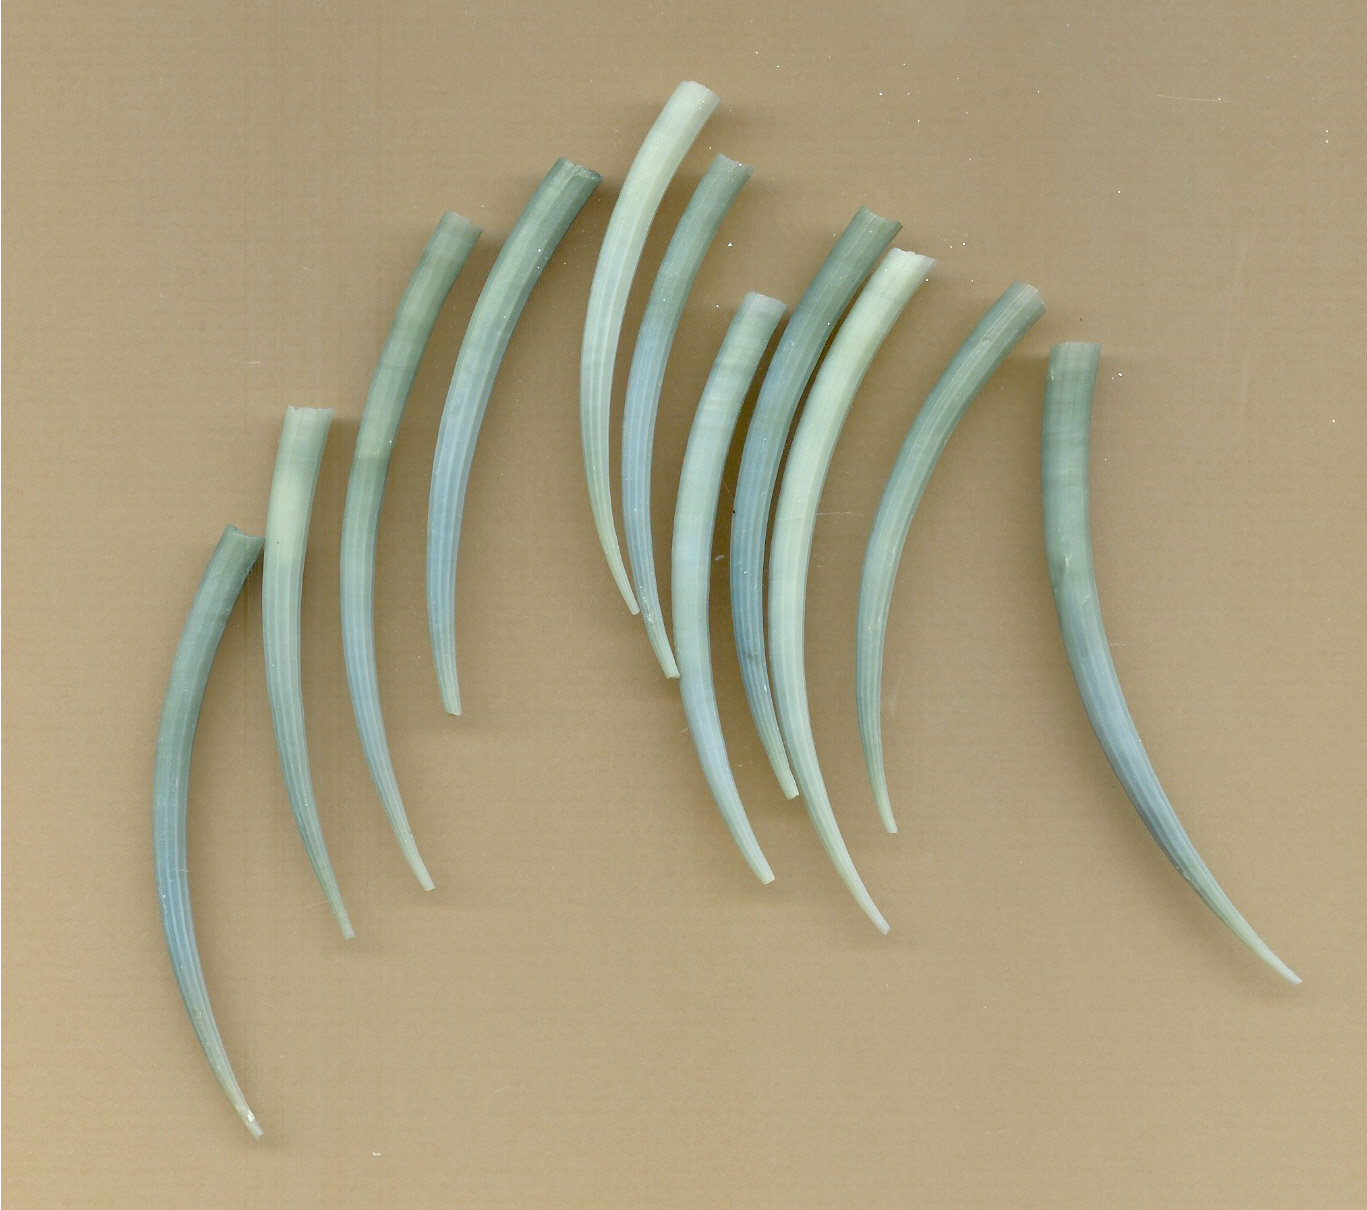 Cocopah Beads and Books: California Indian Shell Beads